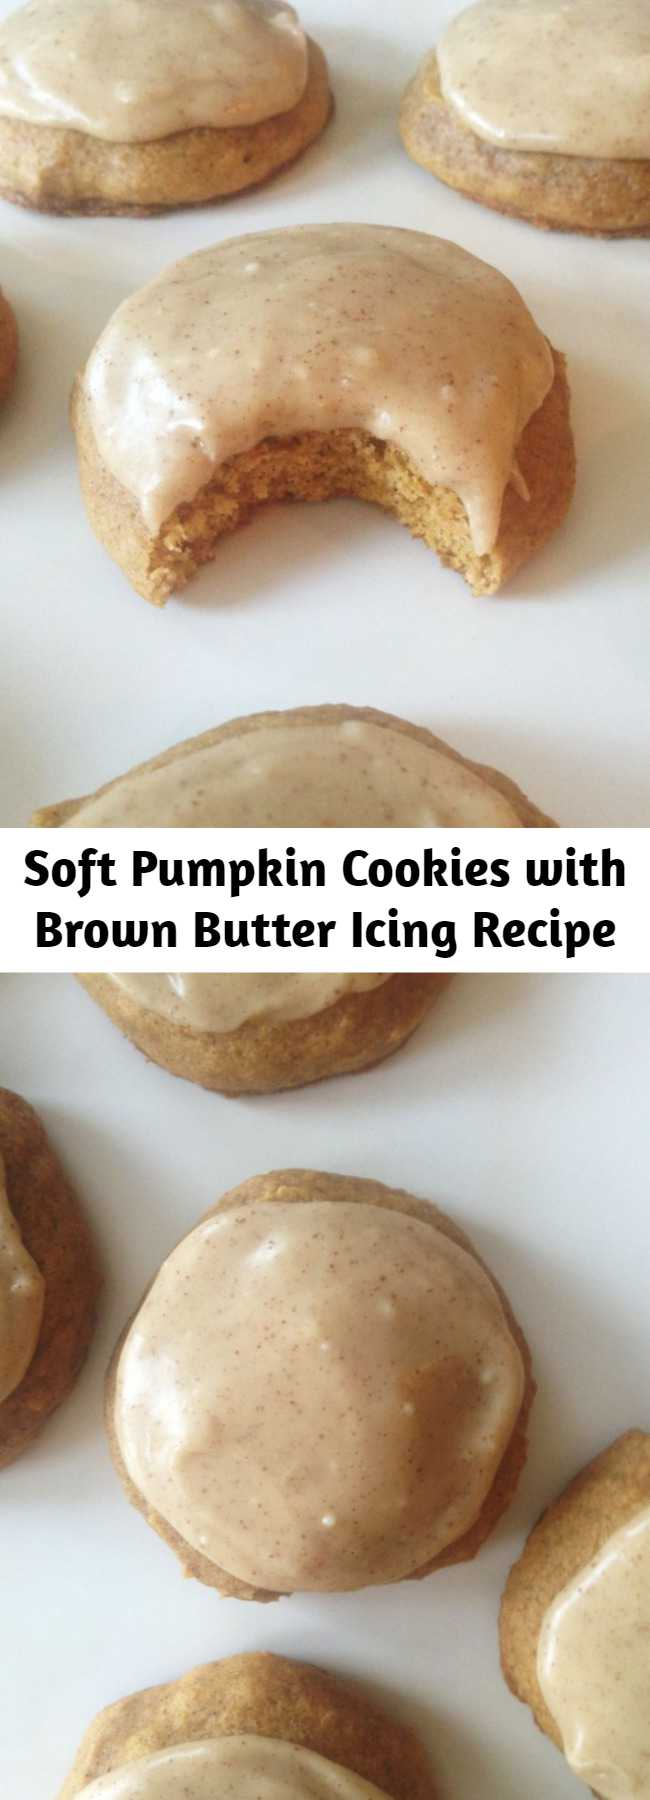 Soft Pumpkin Cookies with Brown Butter Icing Recipe - A soft and tender cake-like pumpkin cookie with pumpkin pie spices, slathered with an amazing brown butter frosting! These Pumpkin Cookies with Brown Butter Icing is the pumpkin recipe that started the whole pumpkin obsession for me, and they do not disappoint!